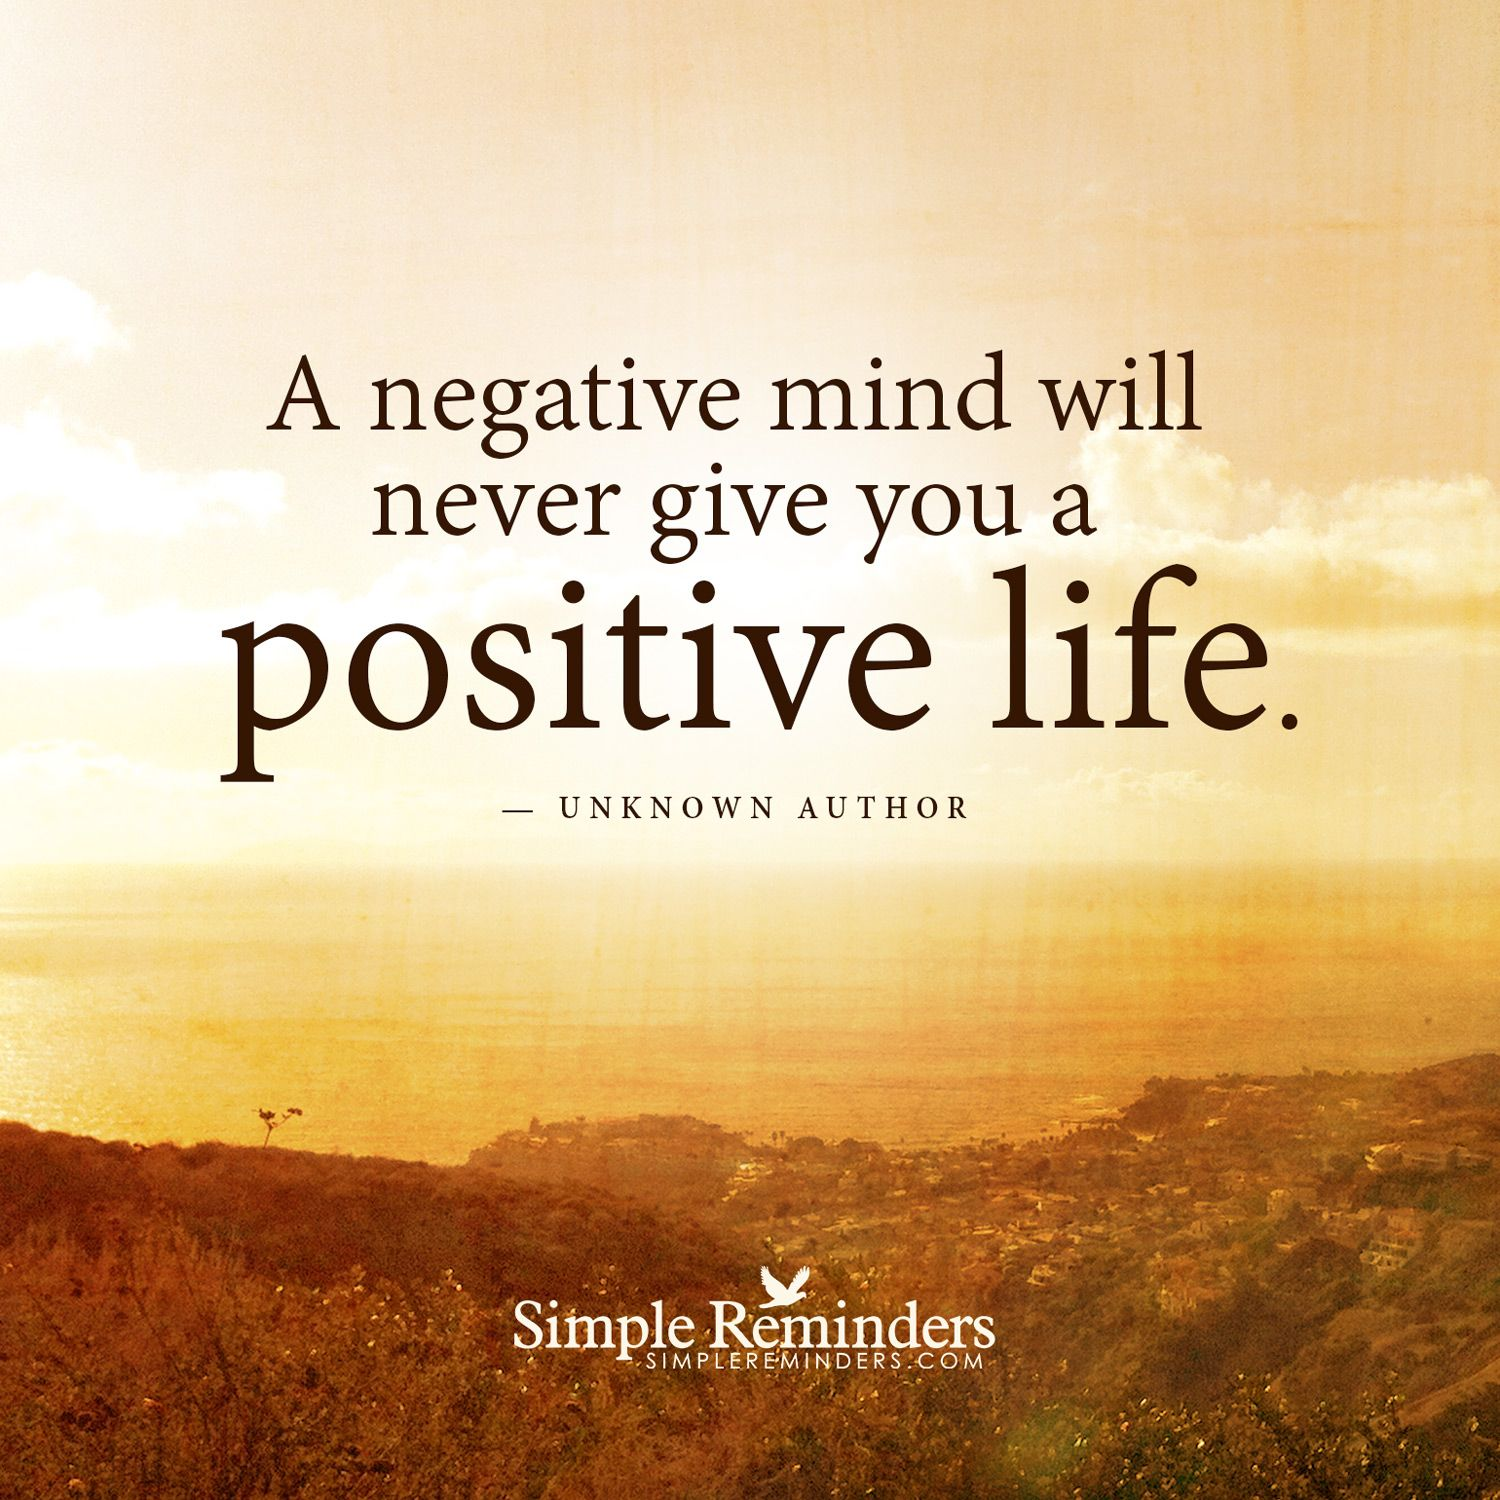 Inspirational Quotes About Life: A Negative Mind Will Never Give You A Positive Life